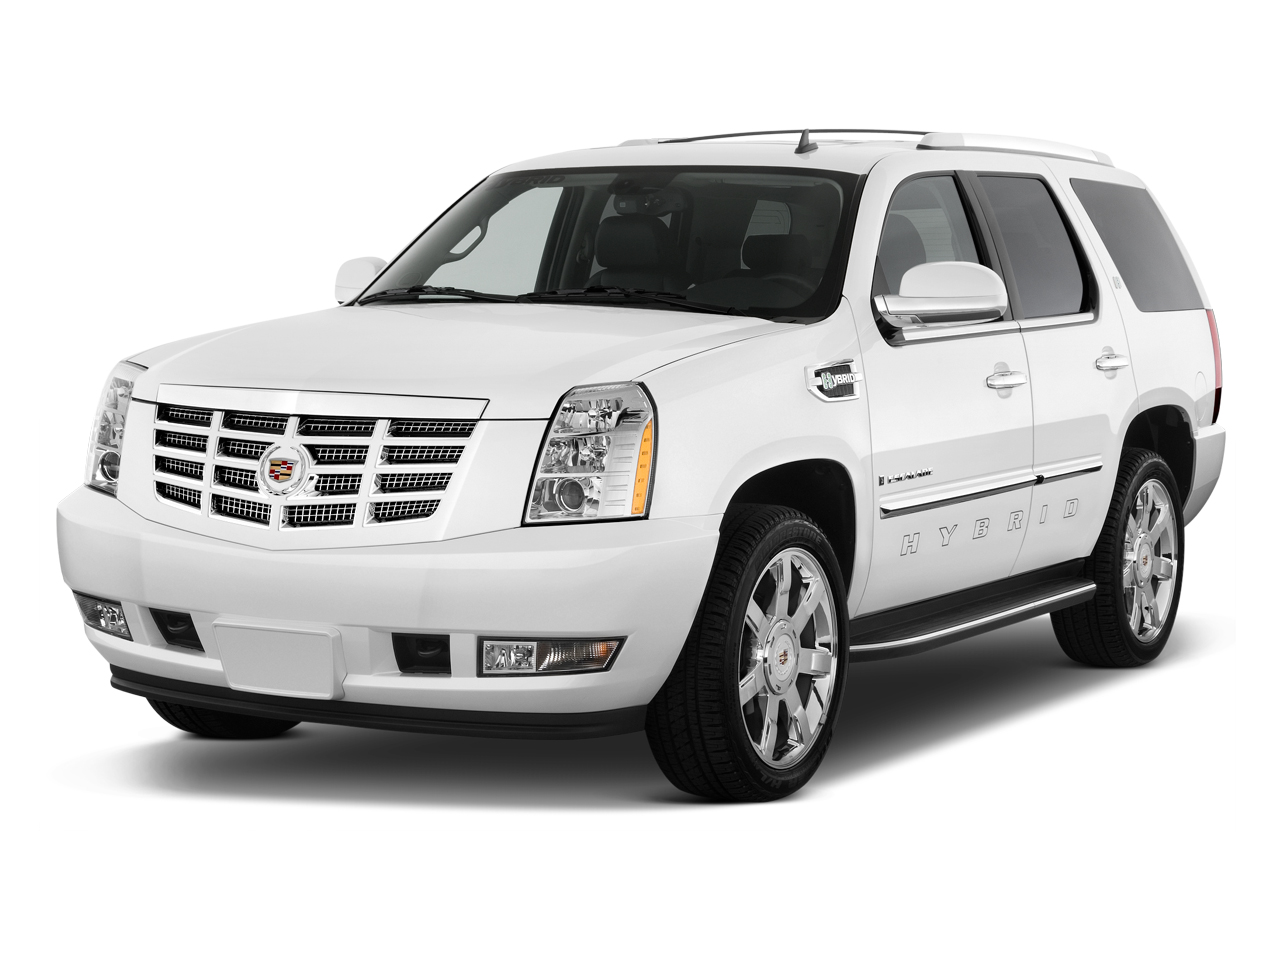 2010 Cadillac Escalade Hybrid Review, Ratings, Specs, Prices, and Photos -  The Car Connection